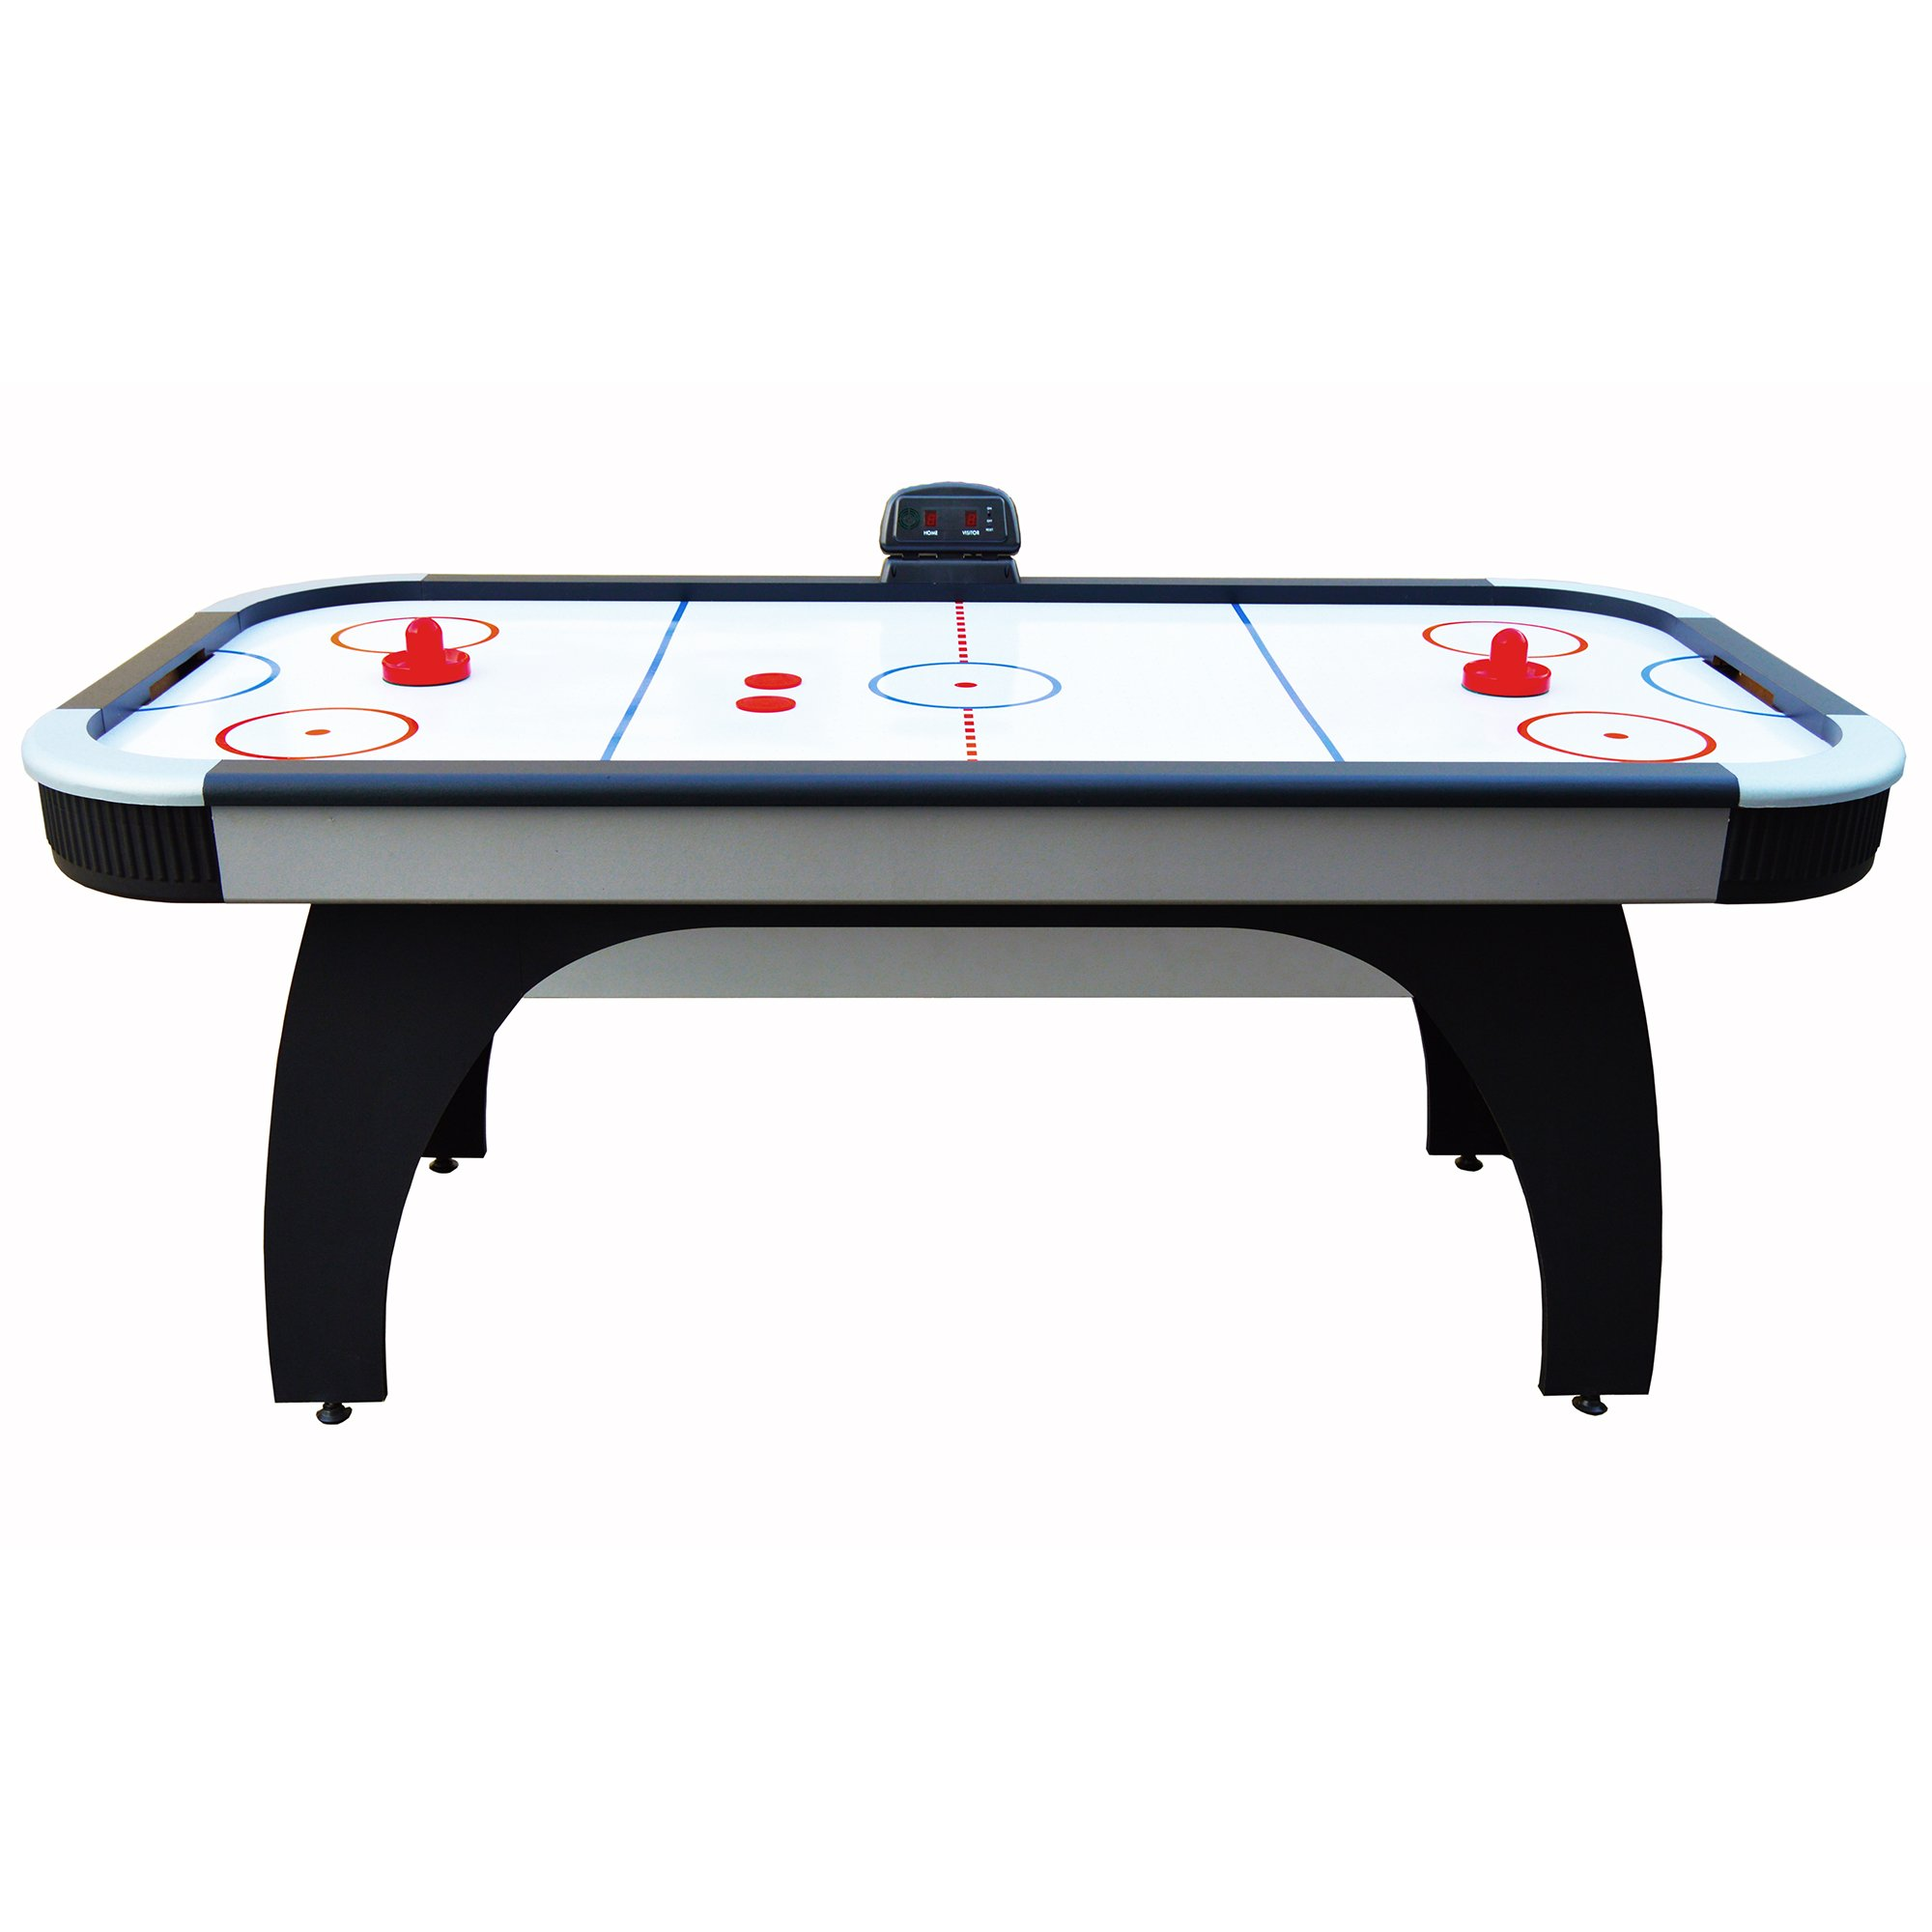 Hathaway Silverstreak 6-Foot Air Hockey Game Table for Family Game Rooms with Electronic Scoring, Black by Hathaway (Image #3)